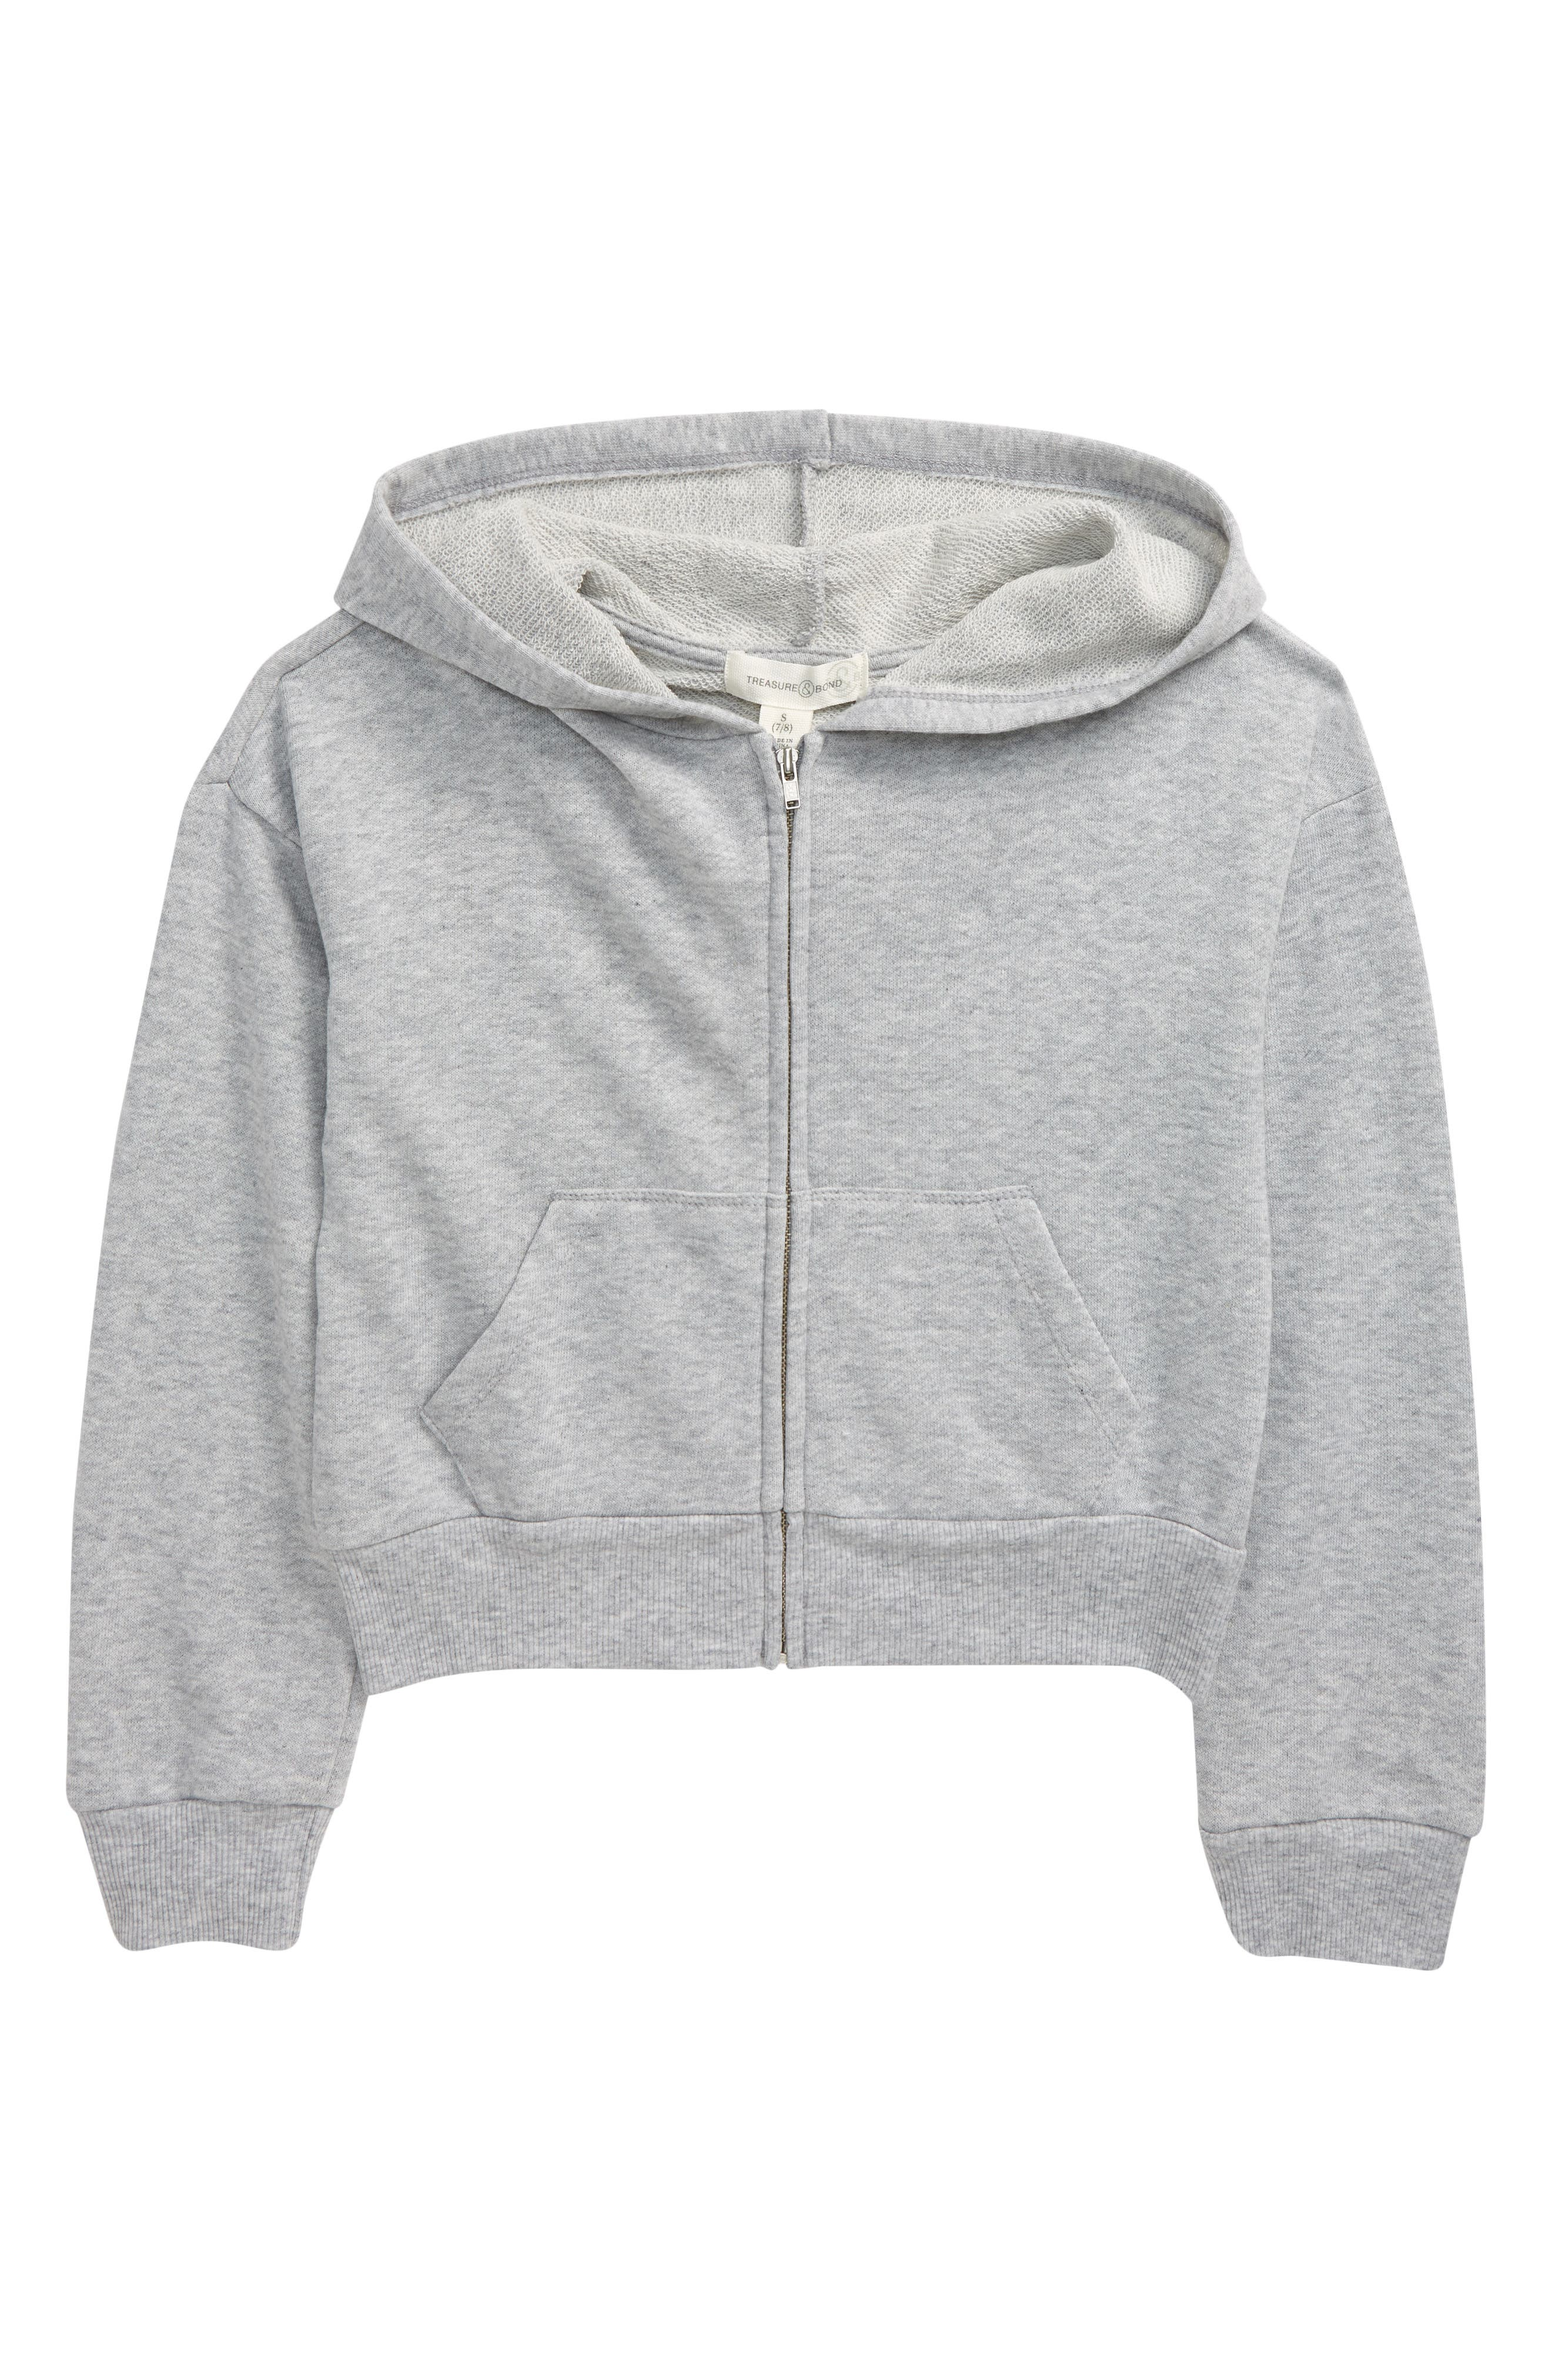 £60 New Men/'s Grey Marl Ace Couture Cotton Mix Zipped Hoodie Size ExLarge